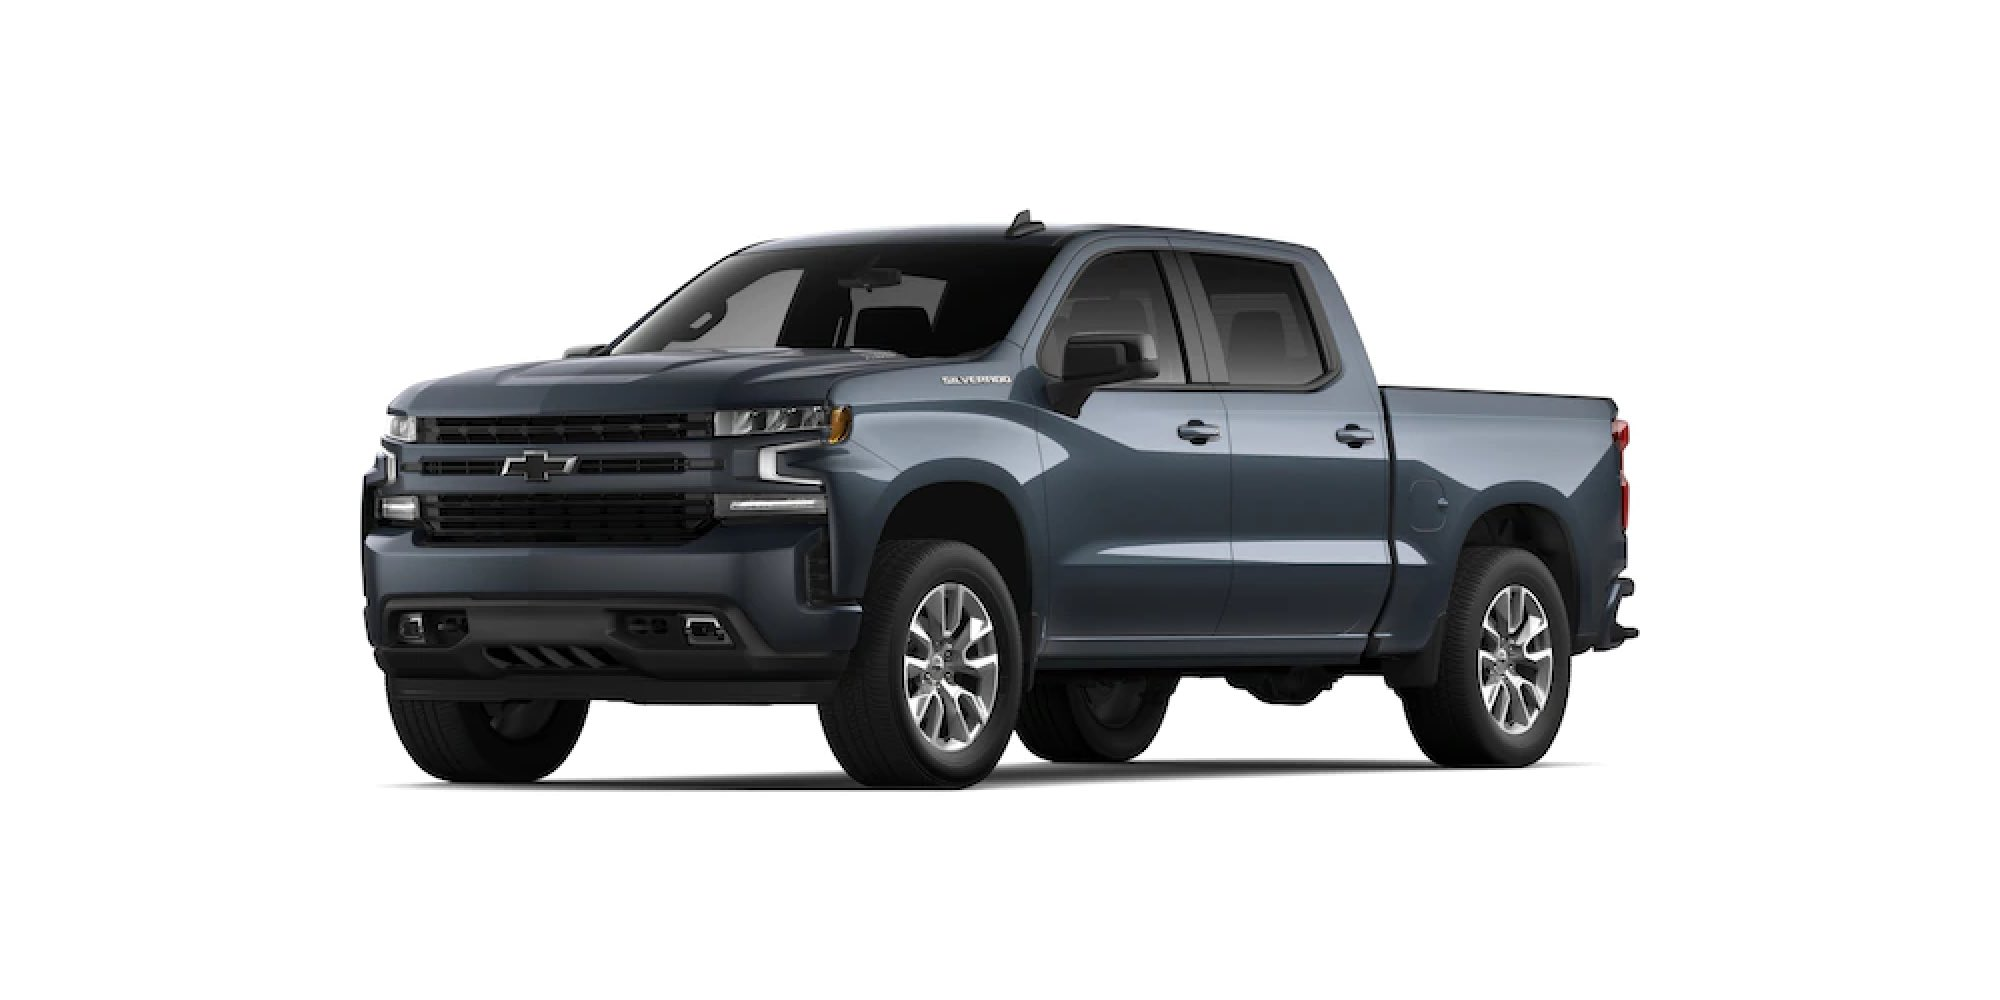 2021 Chevy Silverado 1500 in SHADOW GRAY METALLIC